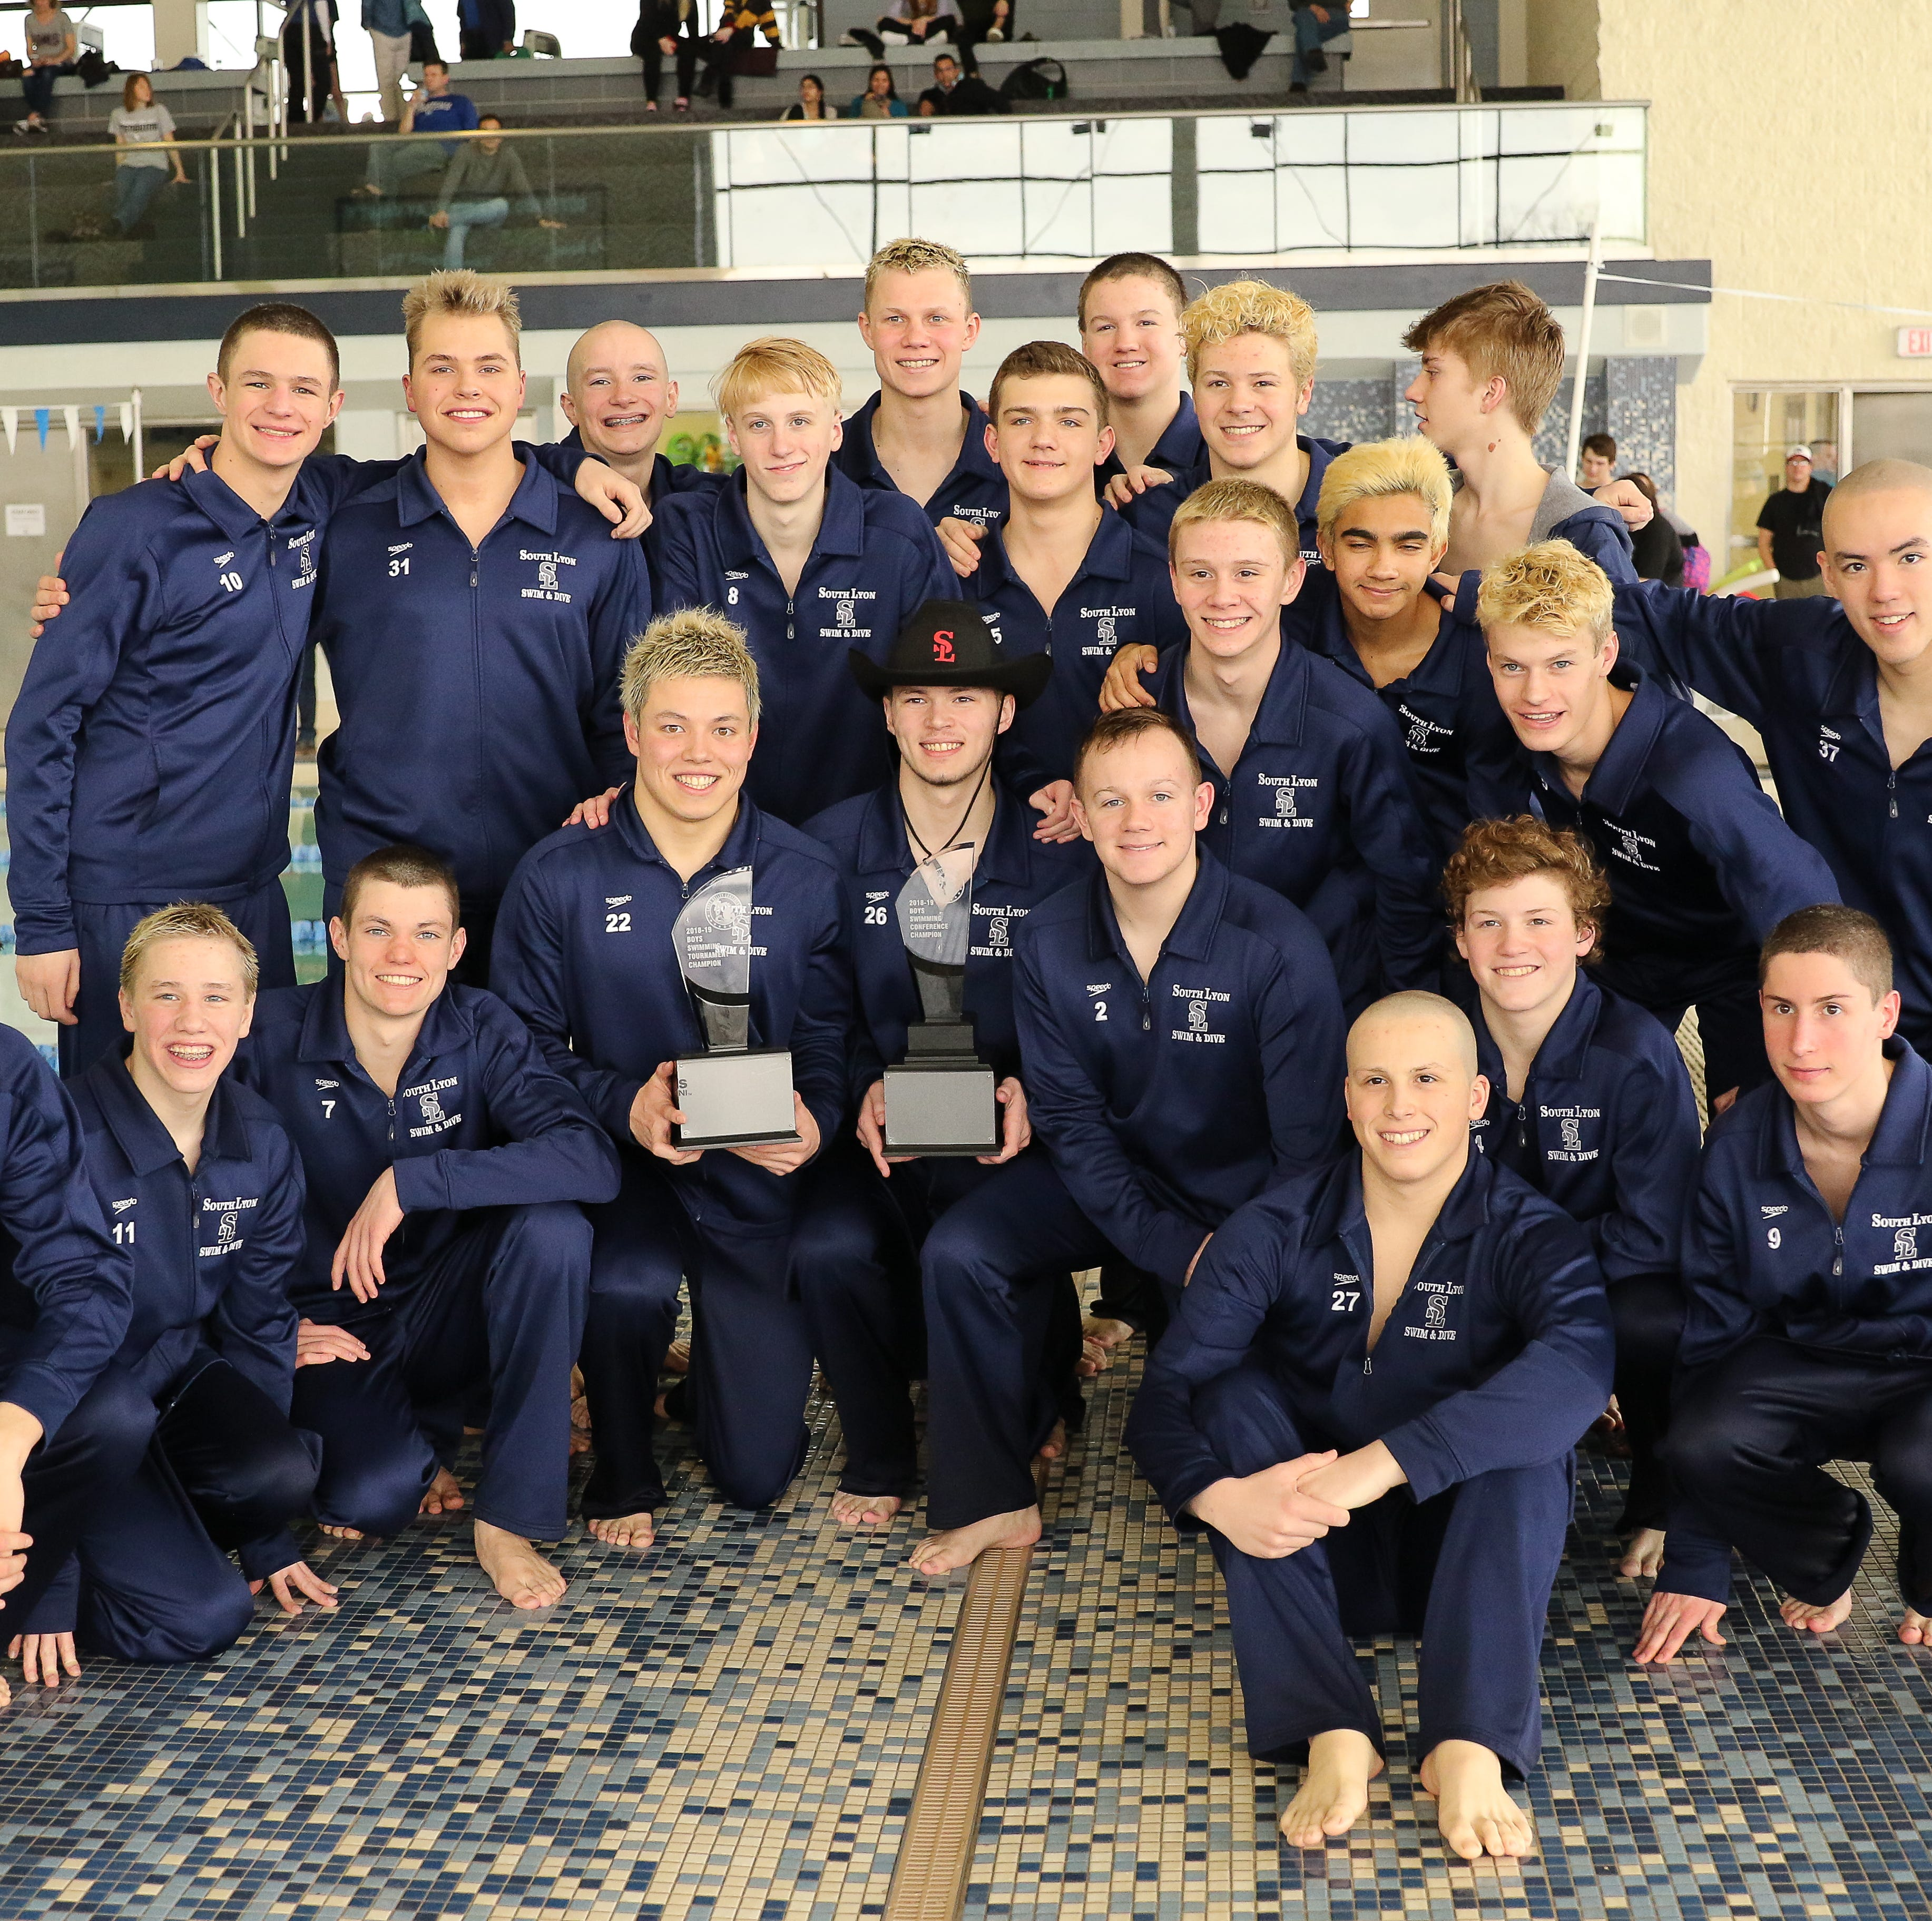 South Lyon Unified boys swim and dive team wins back-to-back conference championships